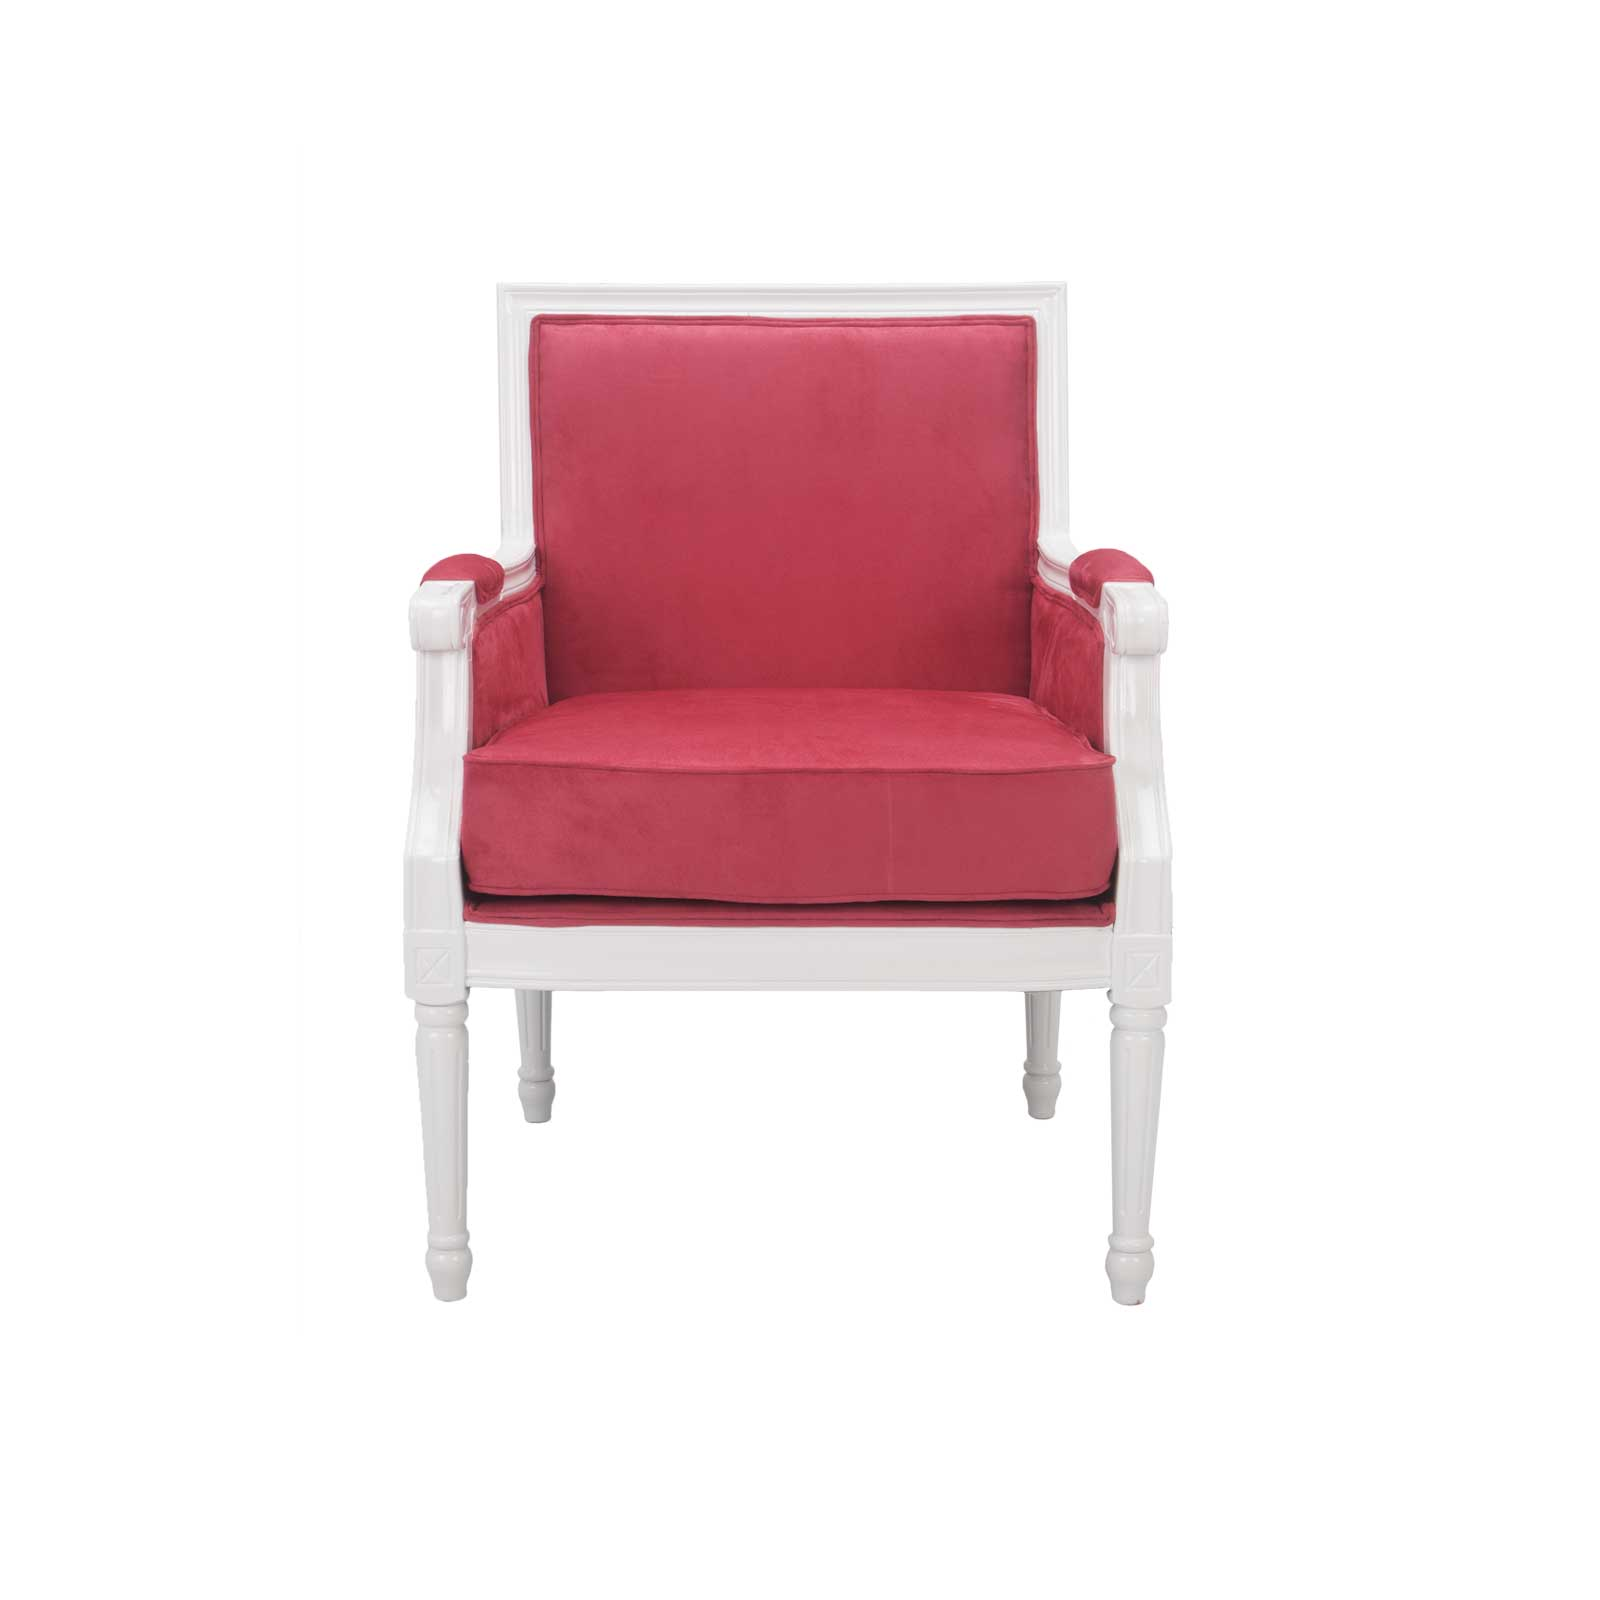 pink club chair metal dining chairs target louie vl lounge formdecor